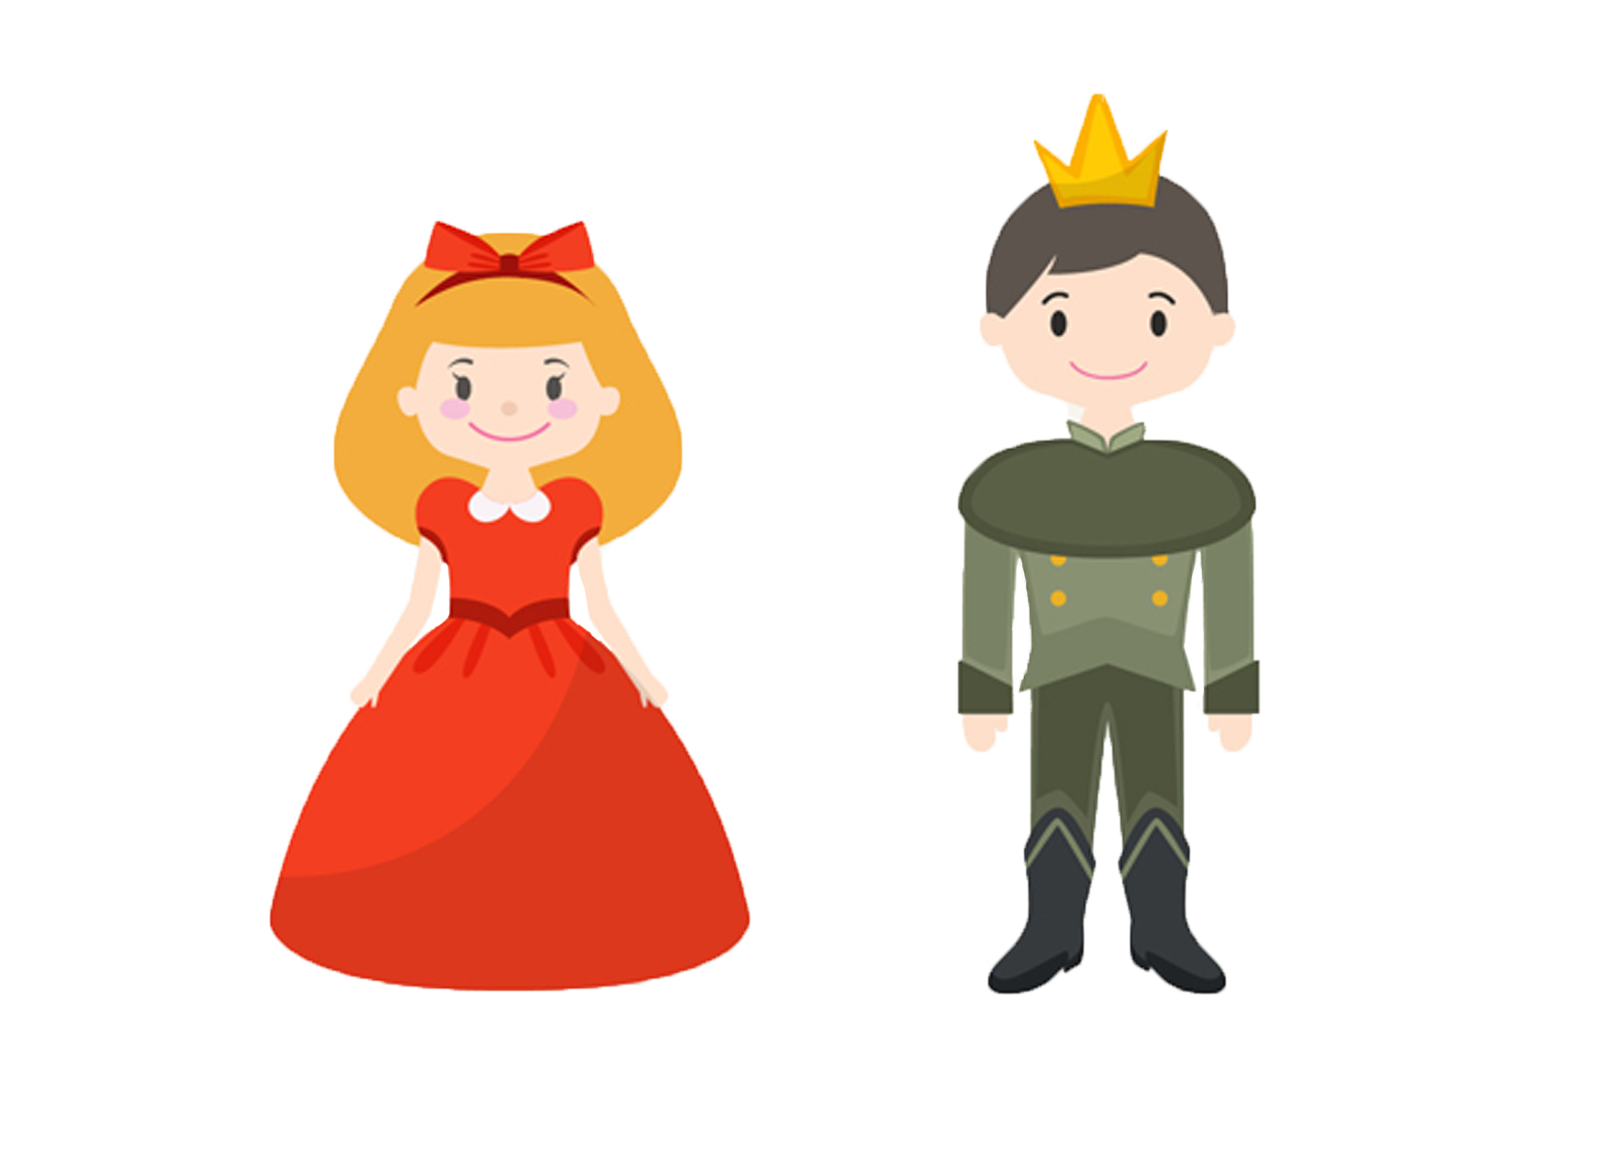 Fairy clipart princess and frog. The prince cartoon tale